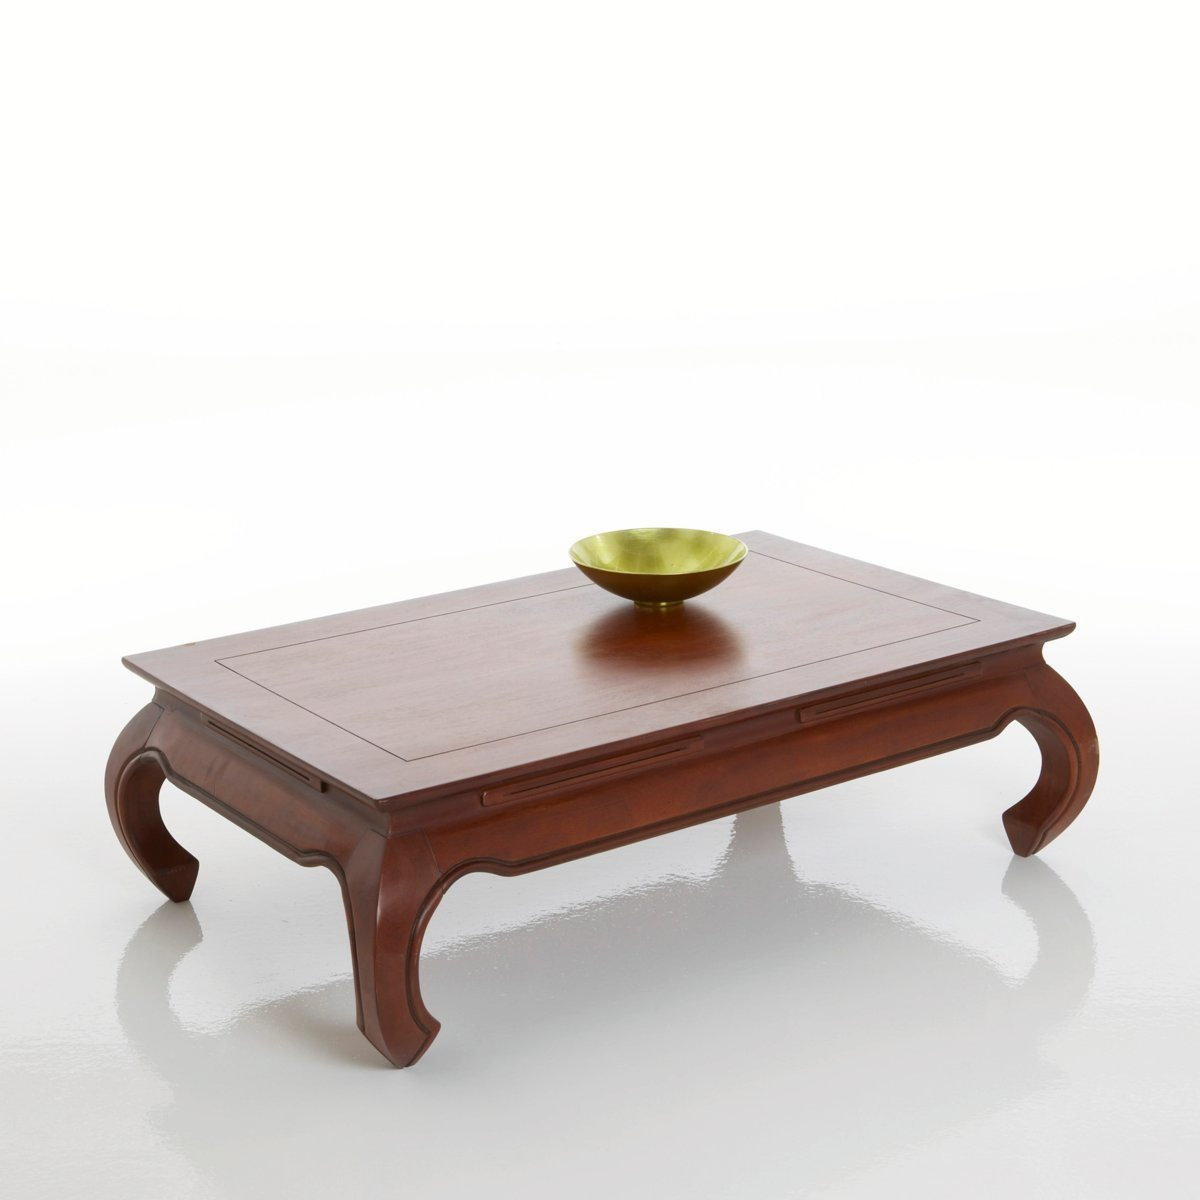 Table Basse Arrondie Table Lamaisondekimia2